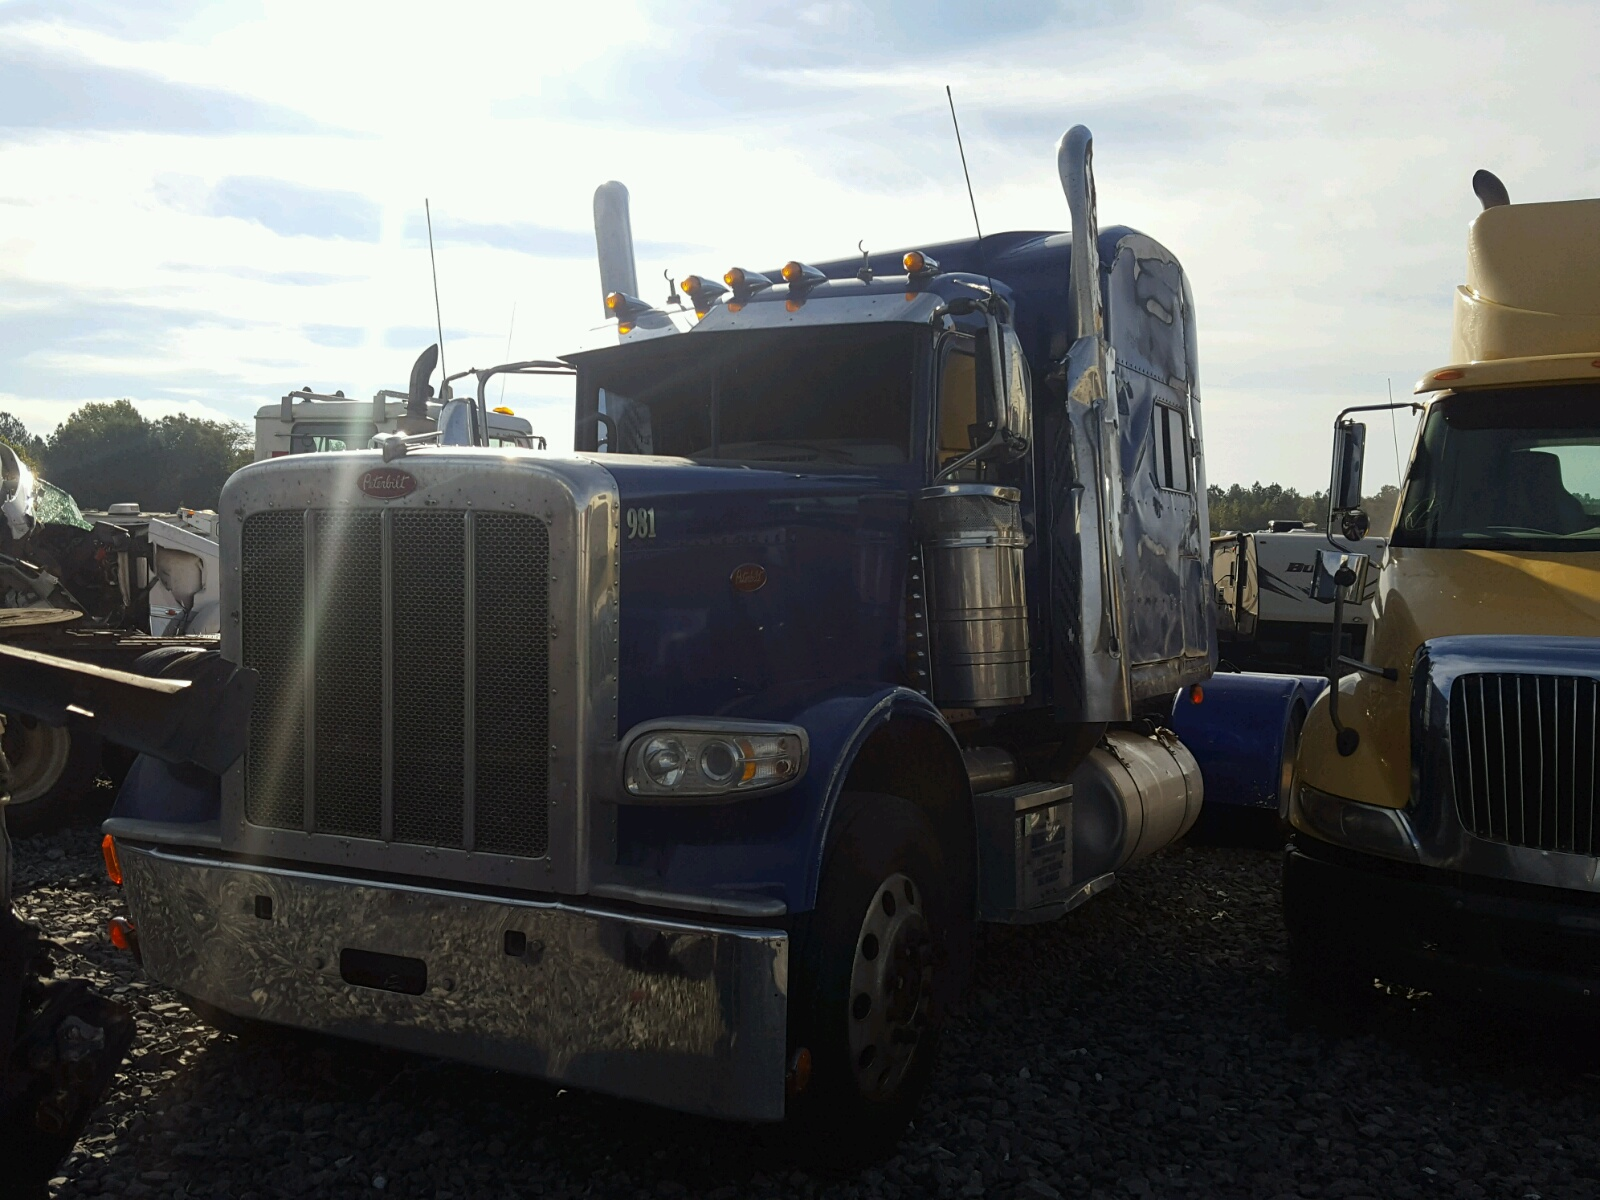 2012 Peterbilt 389 - All Over Damage - 1XPXD49X0CD173328 (Sold)